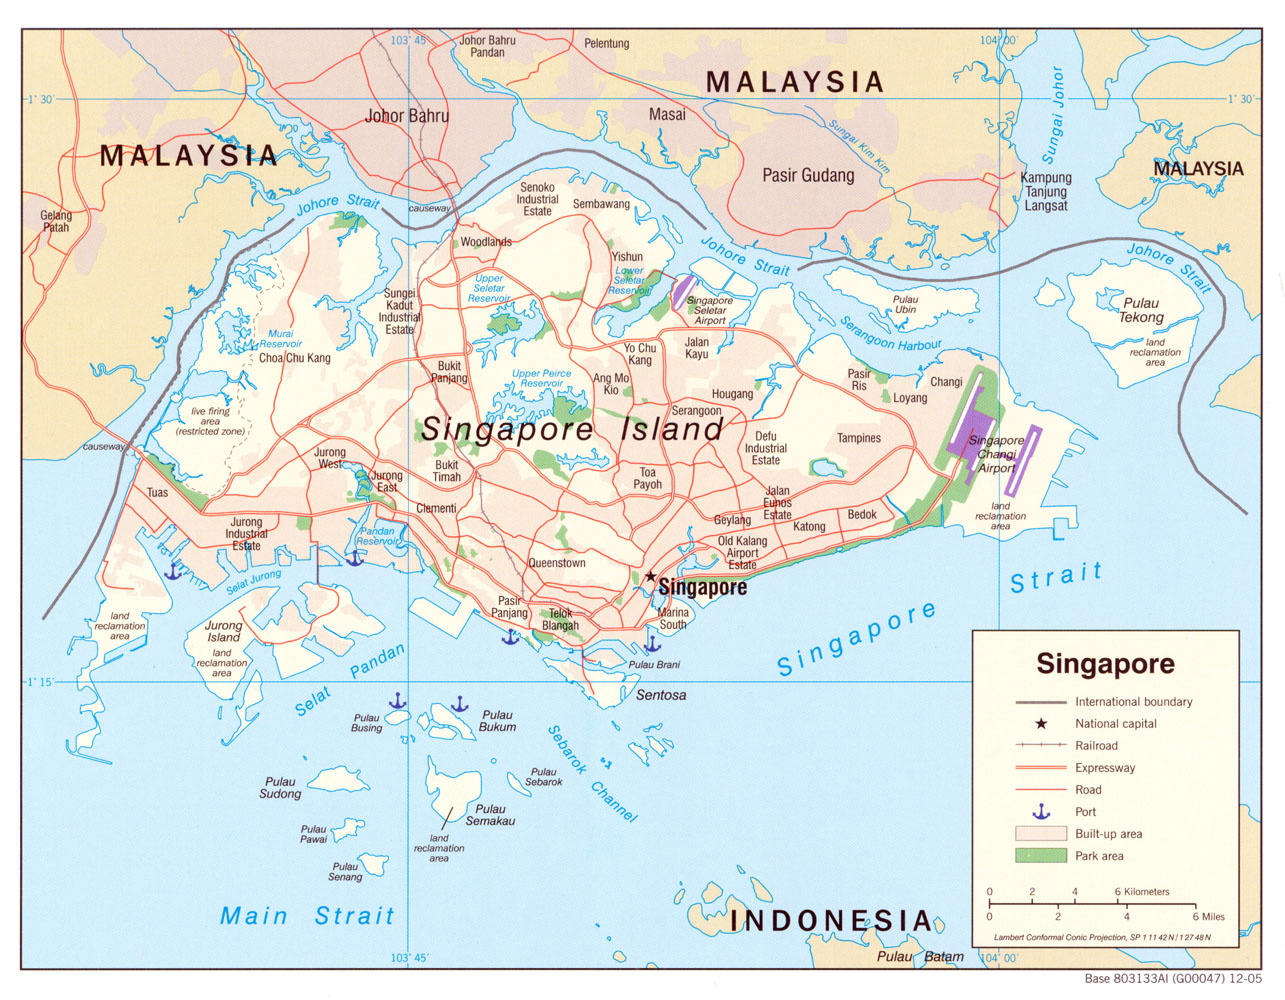 Here are Some Interesting Facts You May Not Know About Singapore